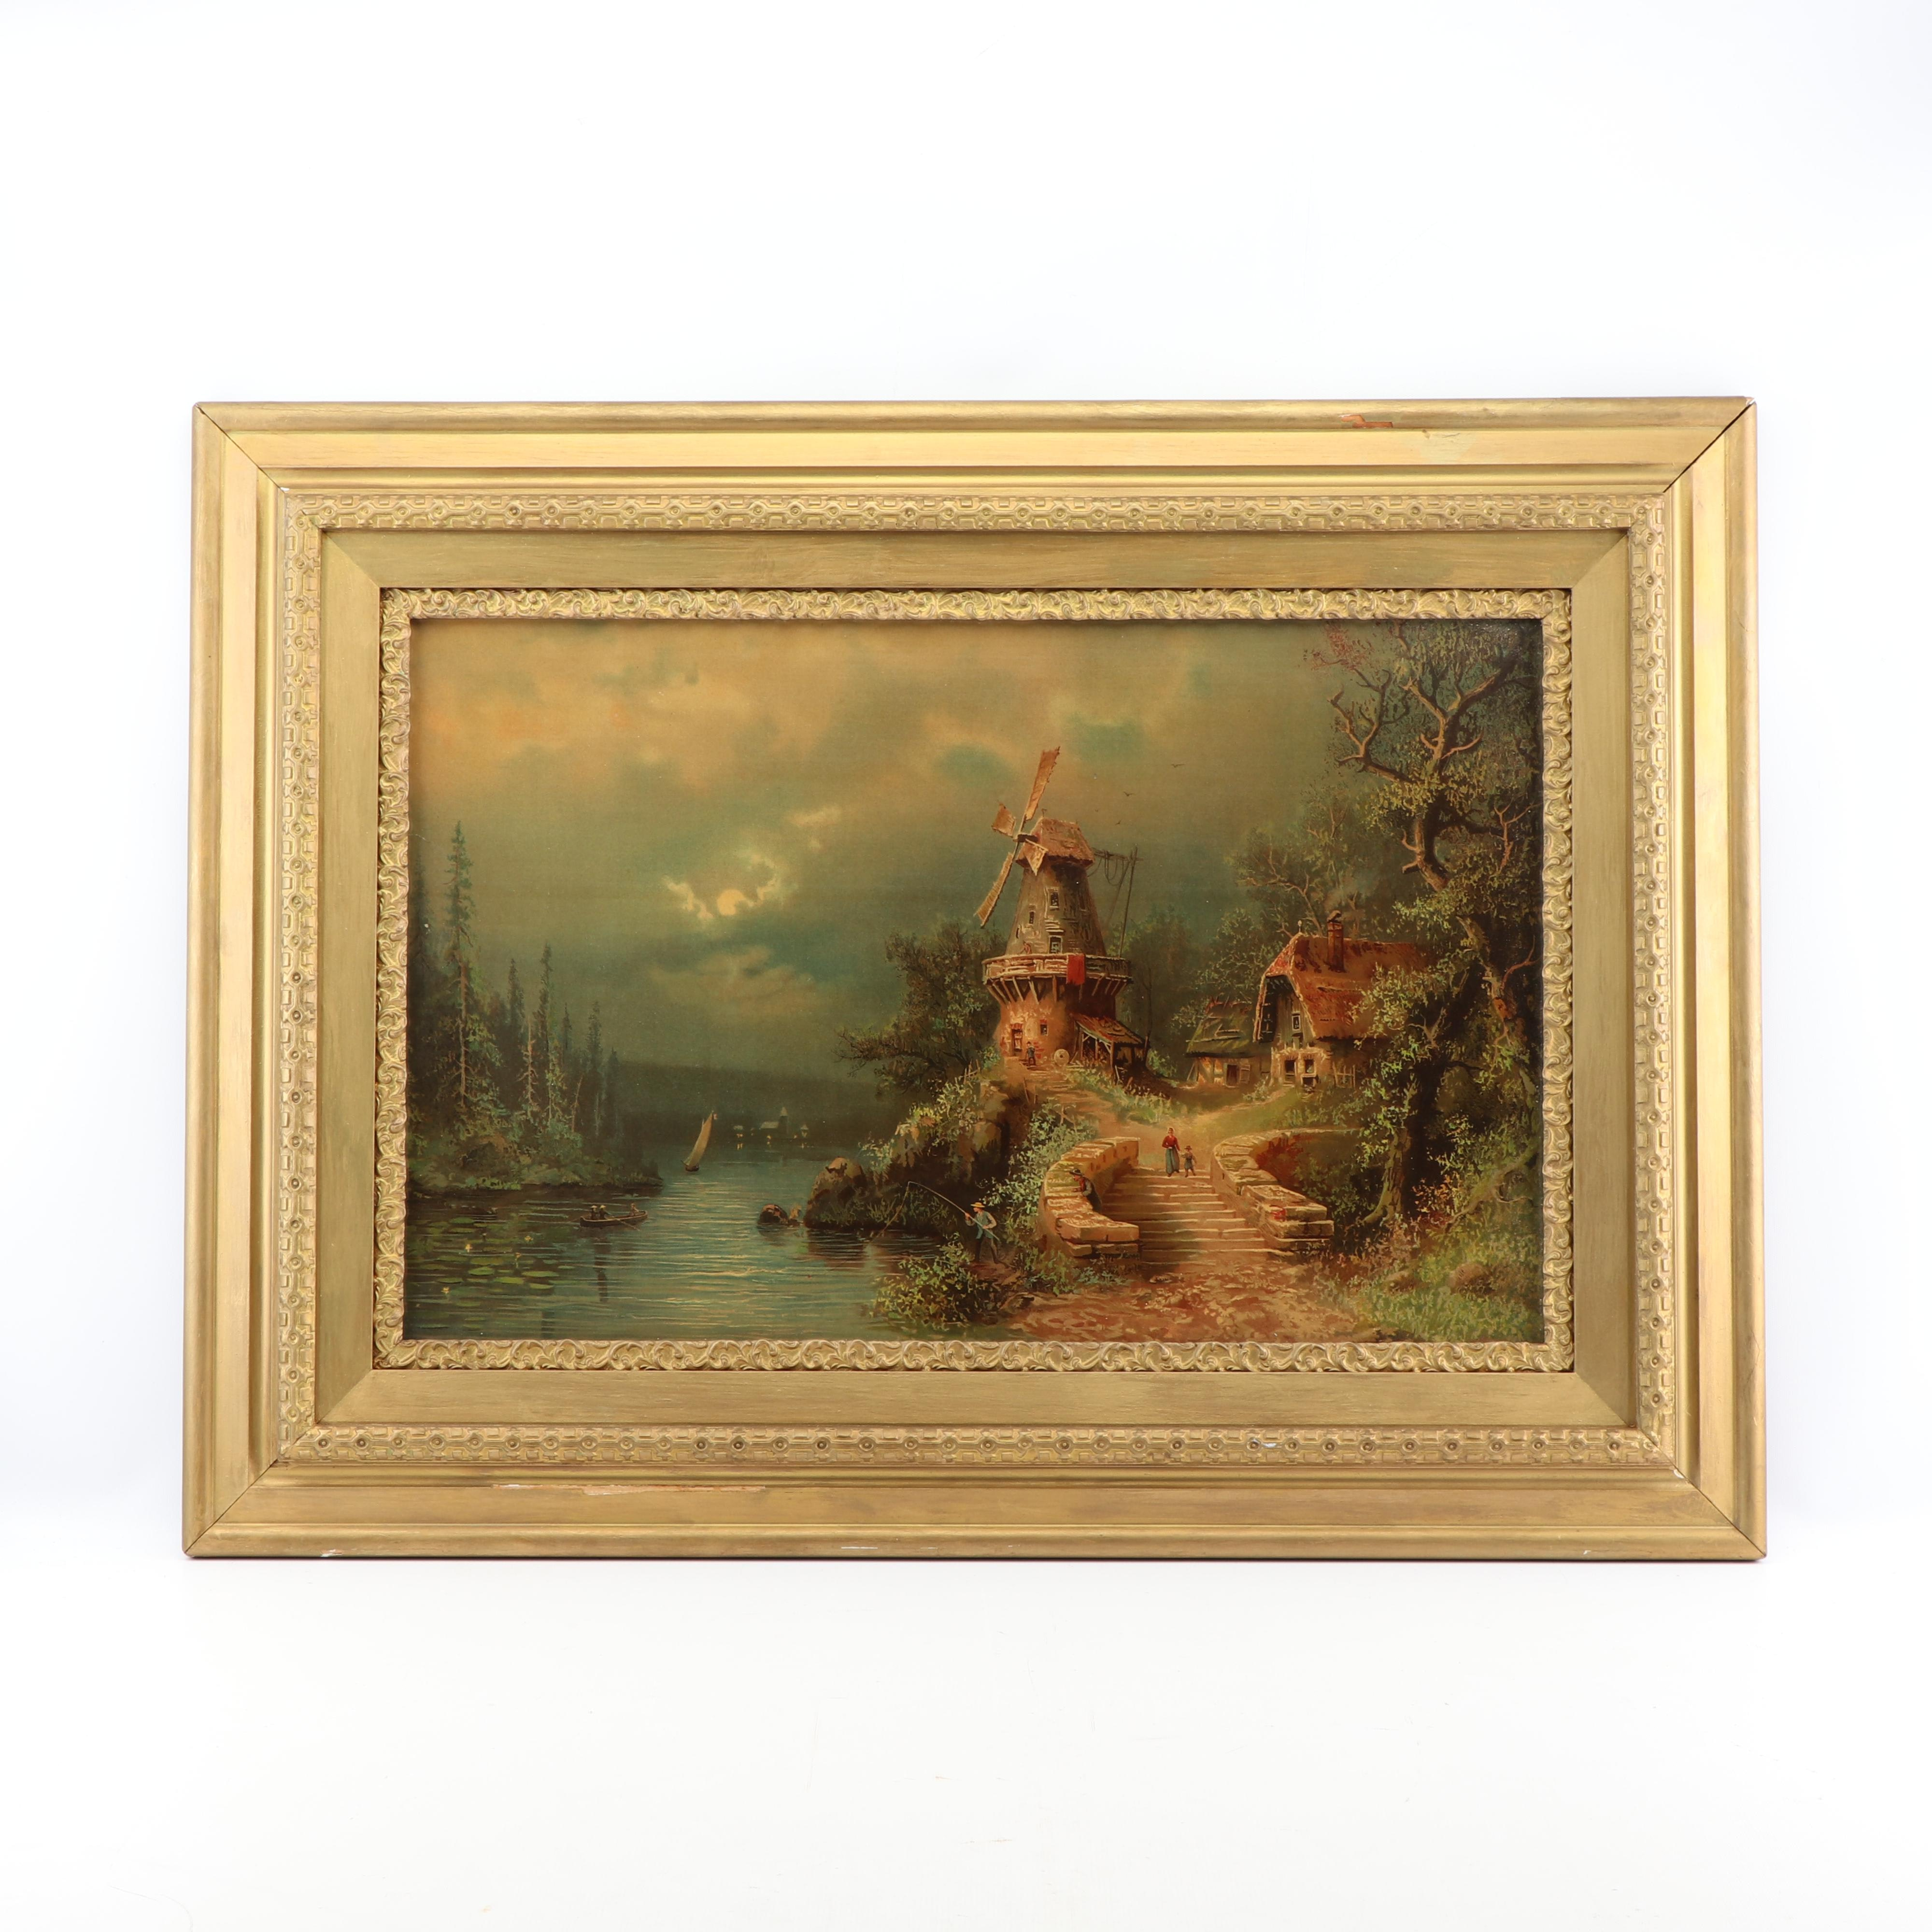 Color Lithograph of Landscape with Windmill